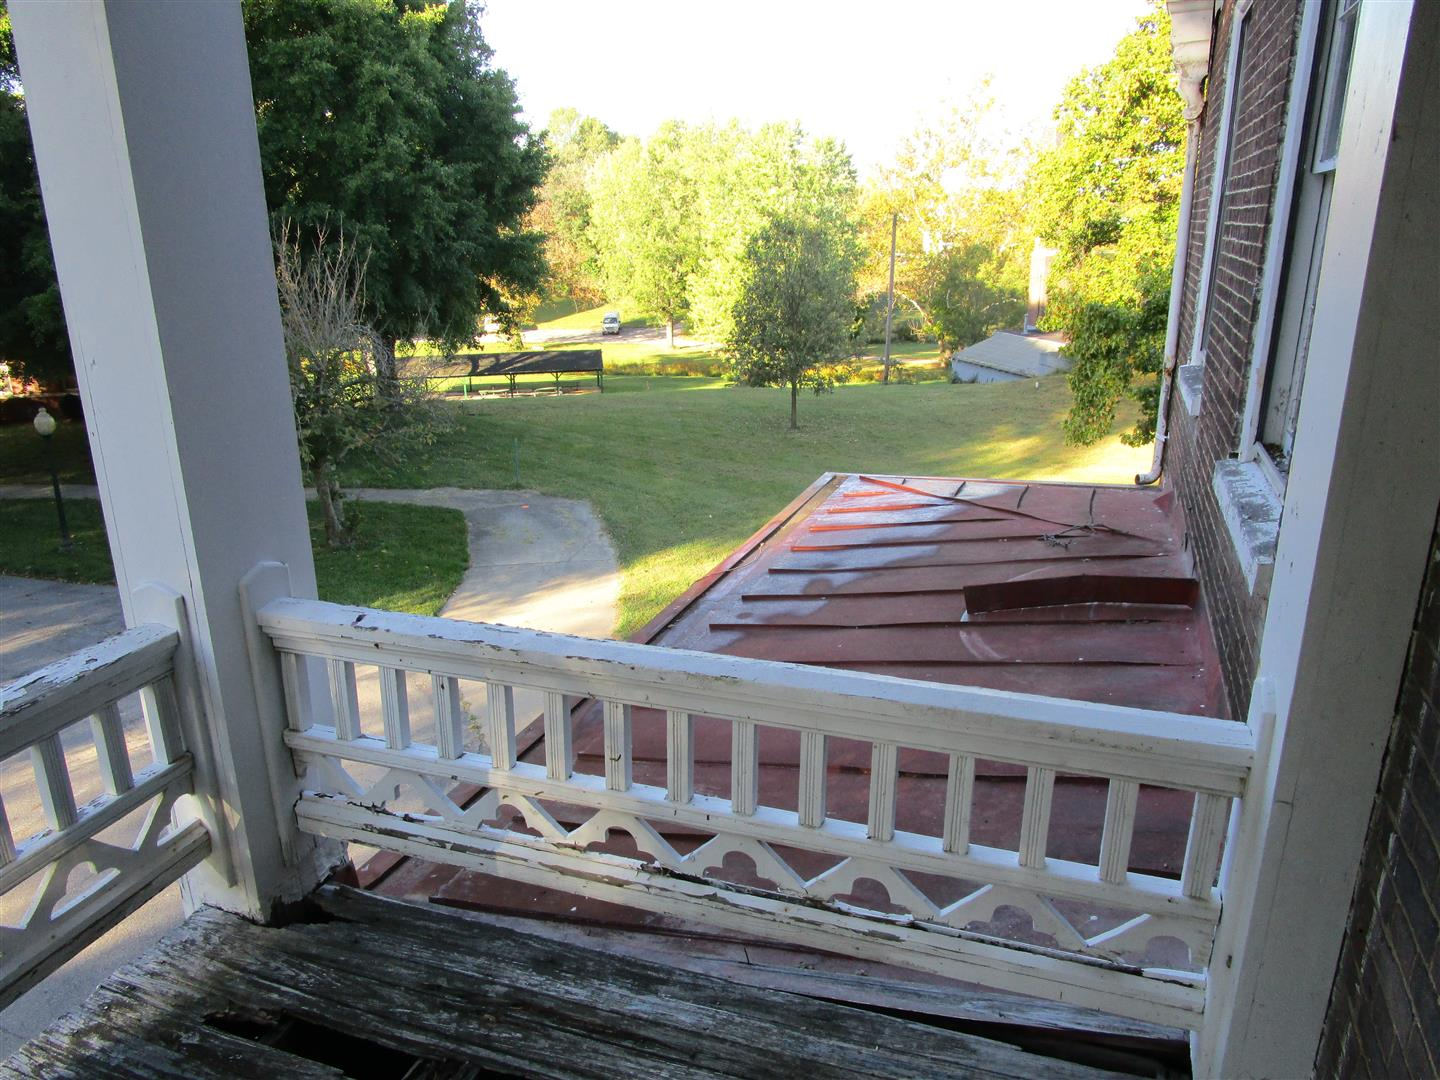 Second Story Balcony Railing and Single Story Porch Roof